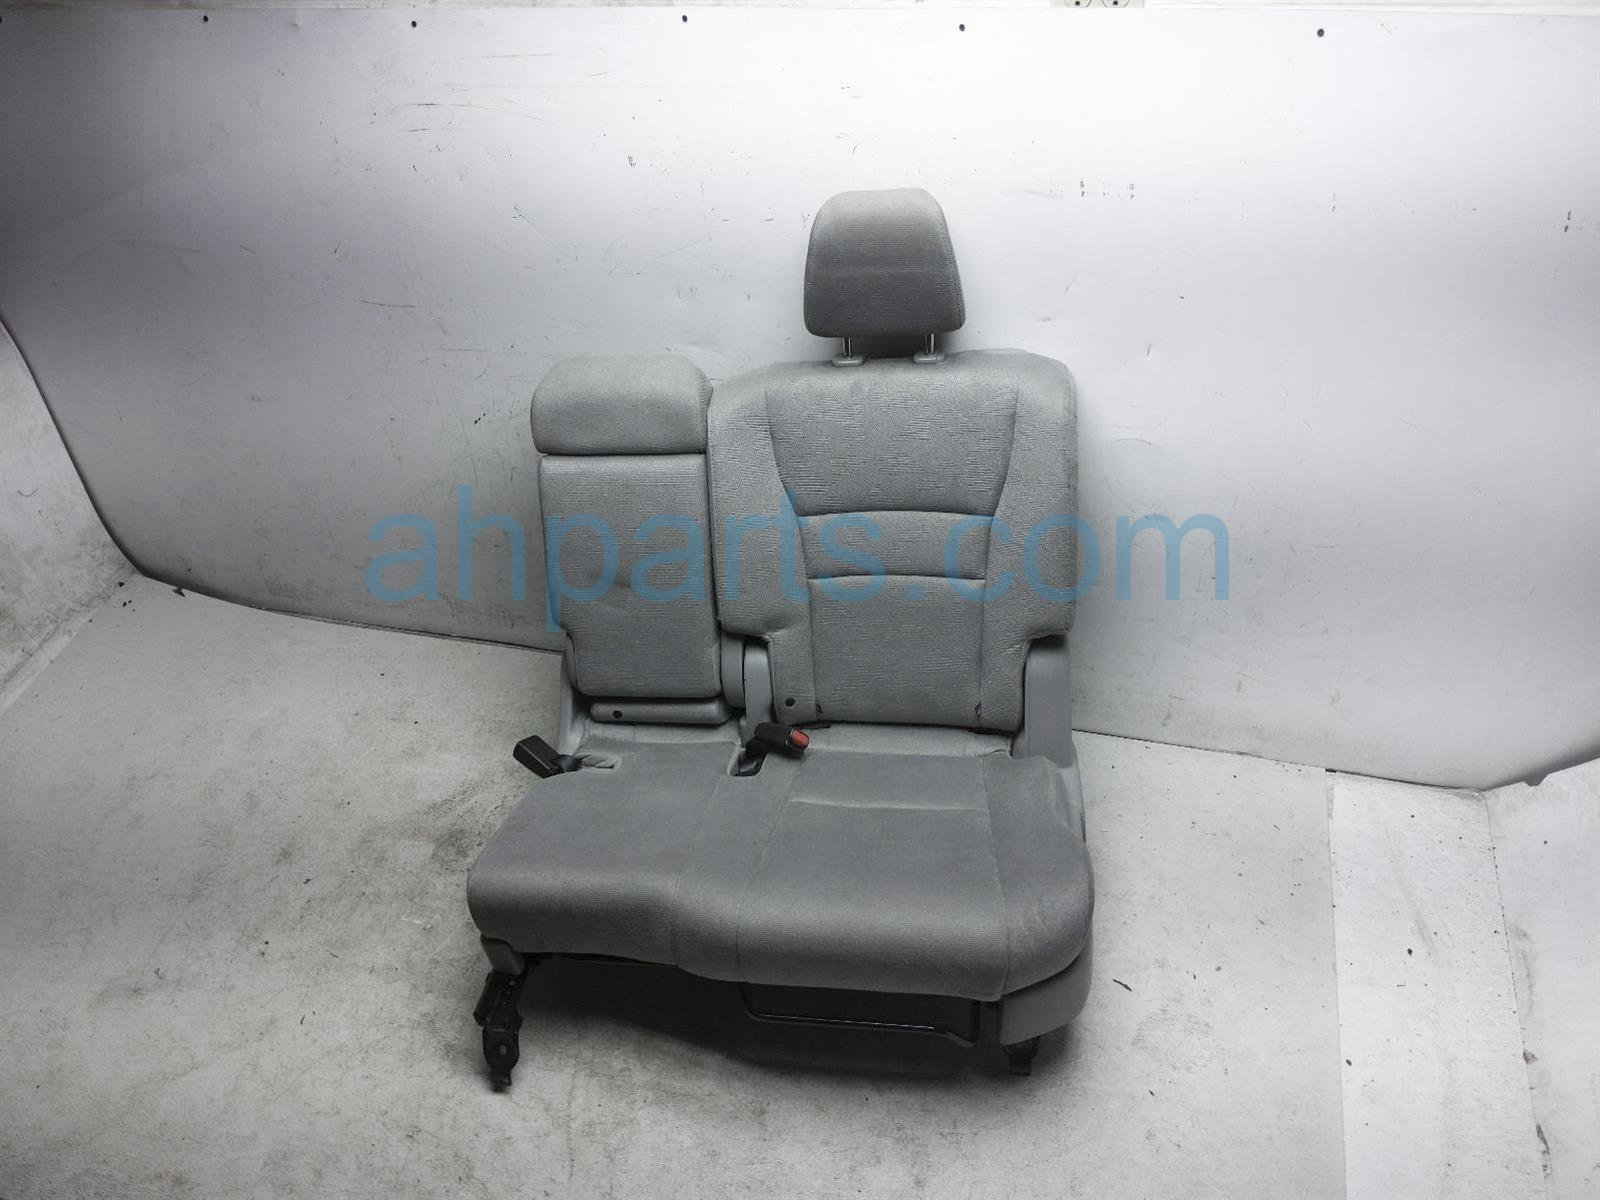 2019 Honda Pilot Rear / Back (2nd Row) 2nd Row Driver Seat   Grey Cloth 81731 TG7 A21ZC Replacement